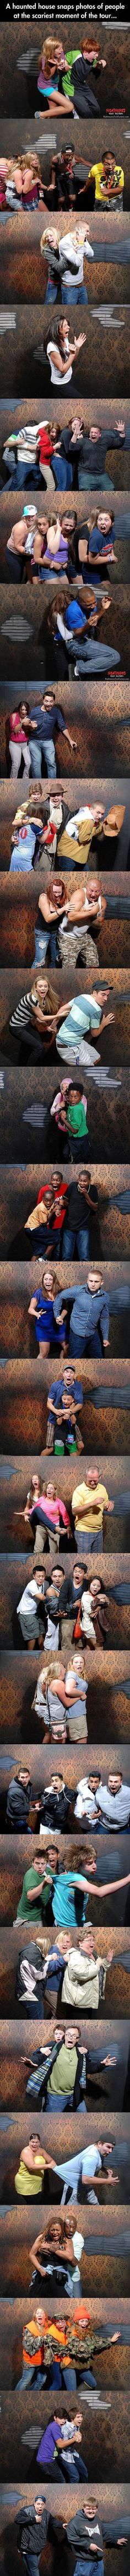 These are hilarious! Love the ones where the dudes are hiding behind their dates!